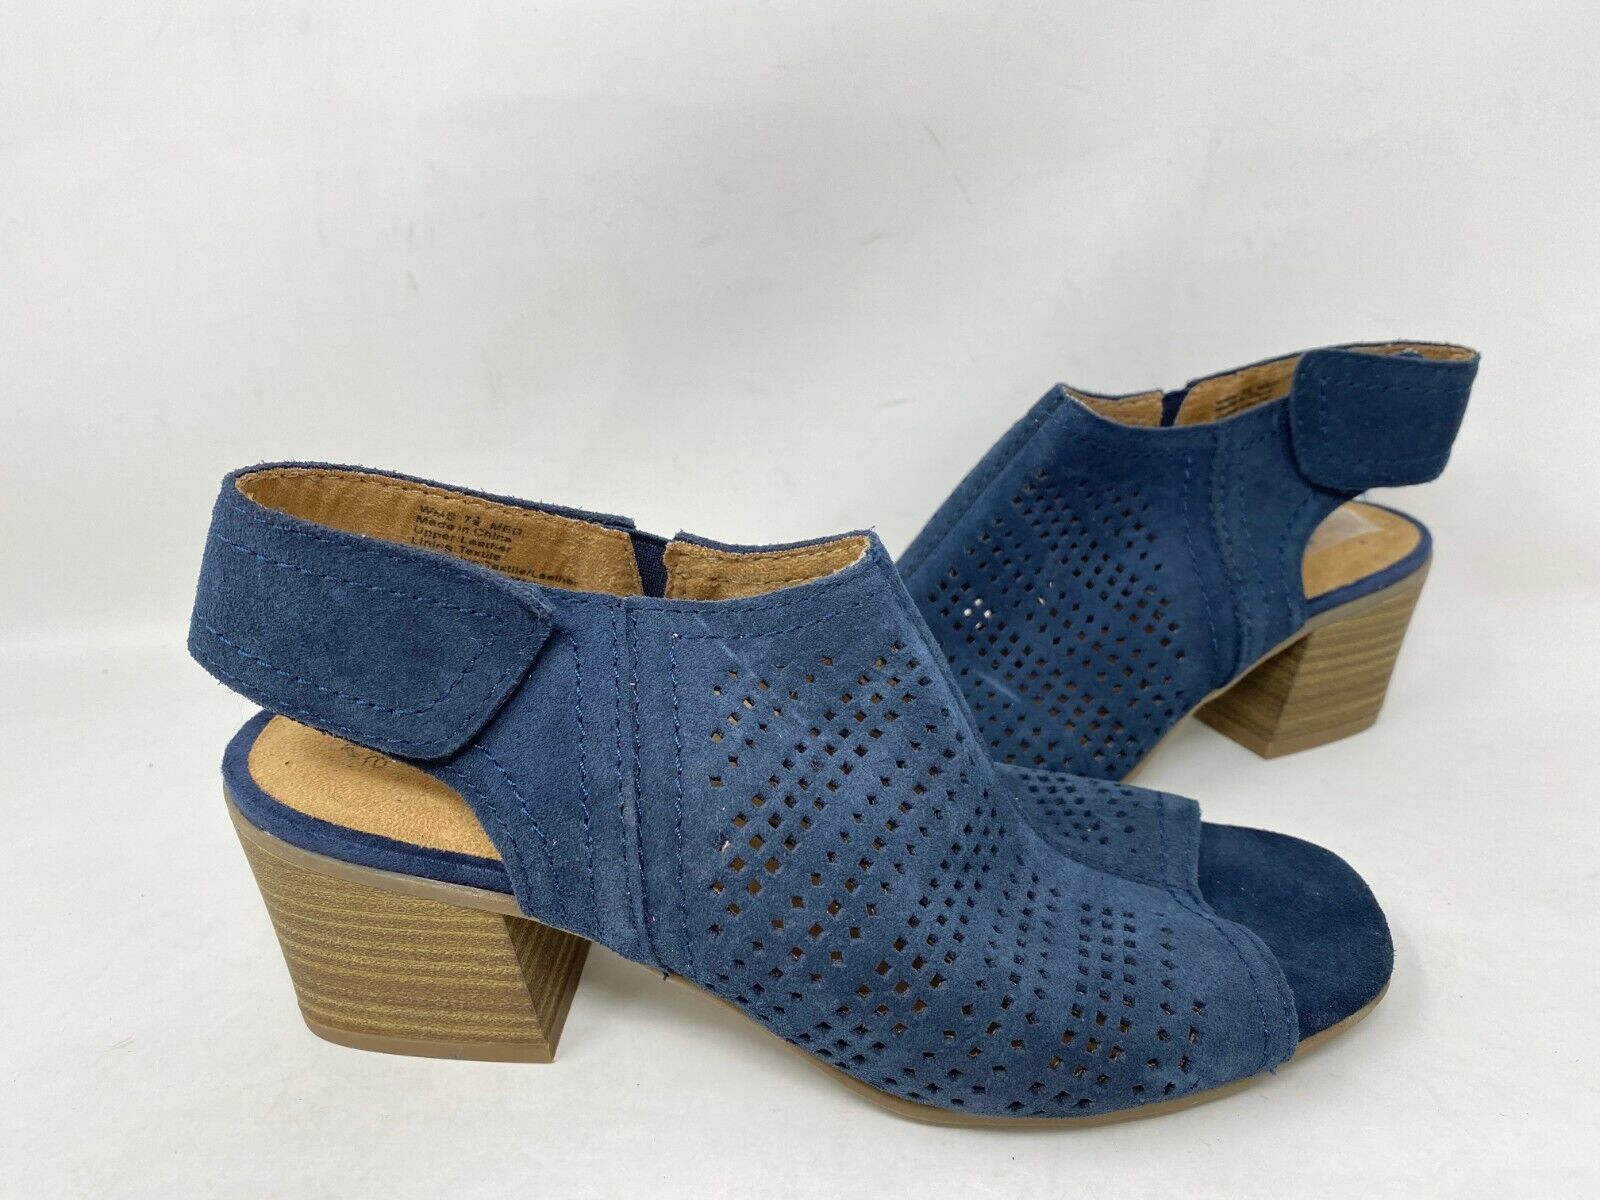 NEW! Sonoma Women's Lisbeth Strap On Suede Ankle Booties Nav